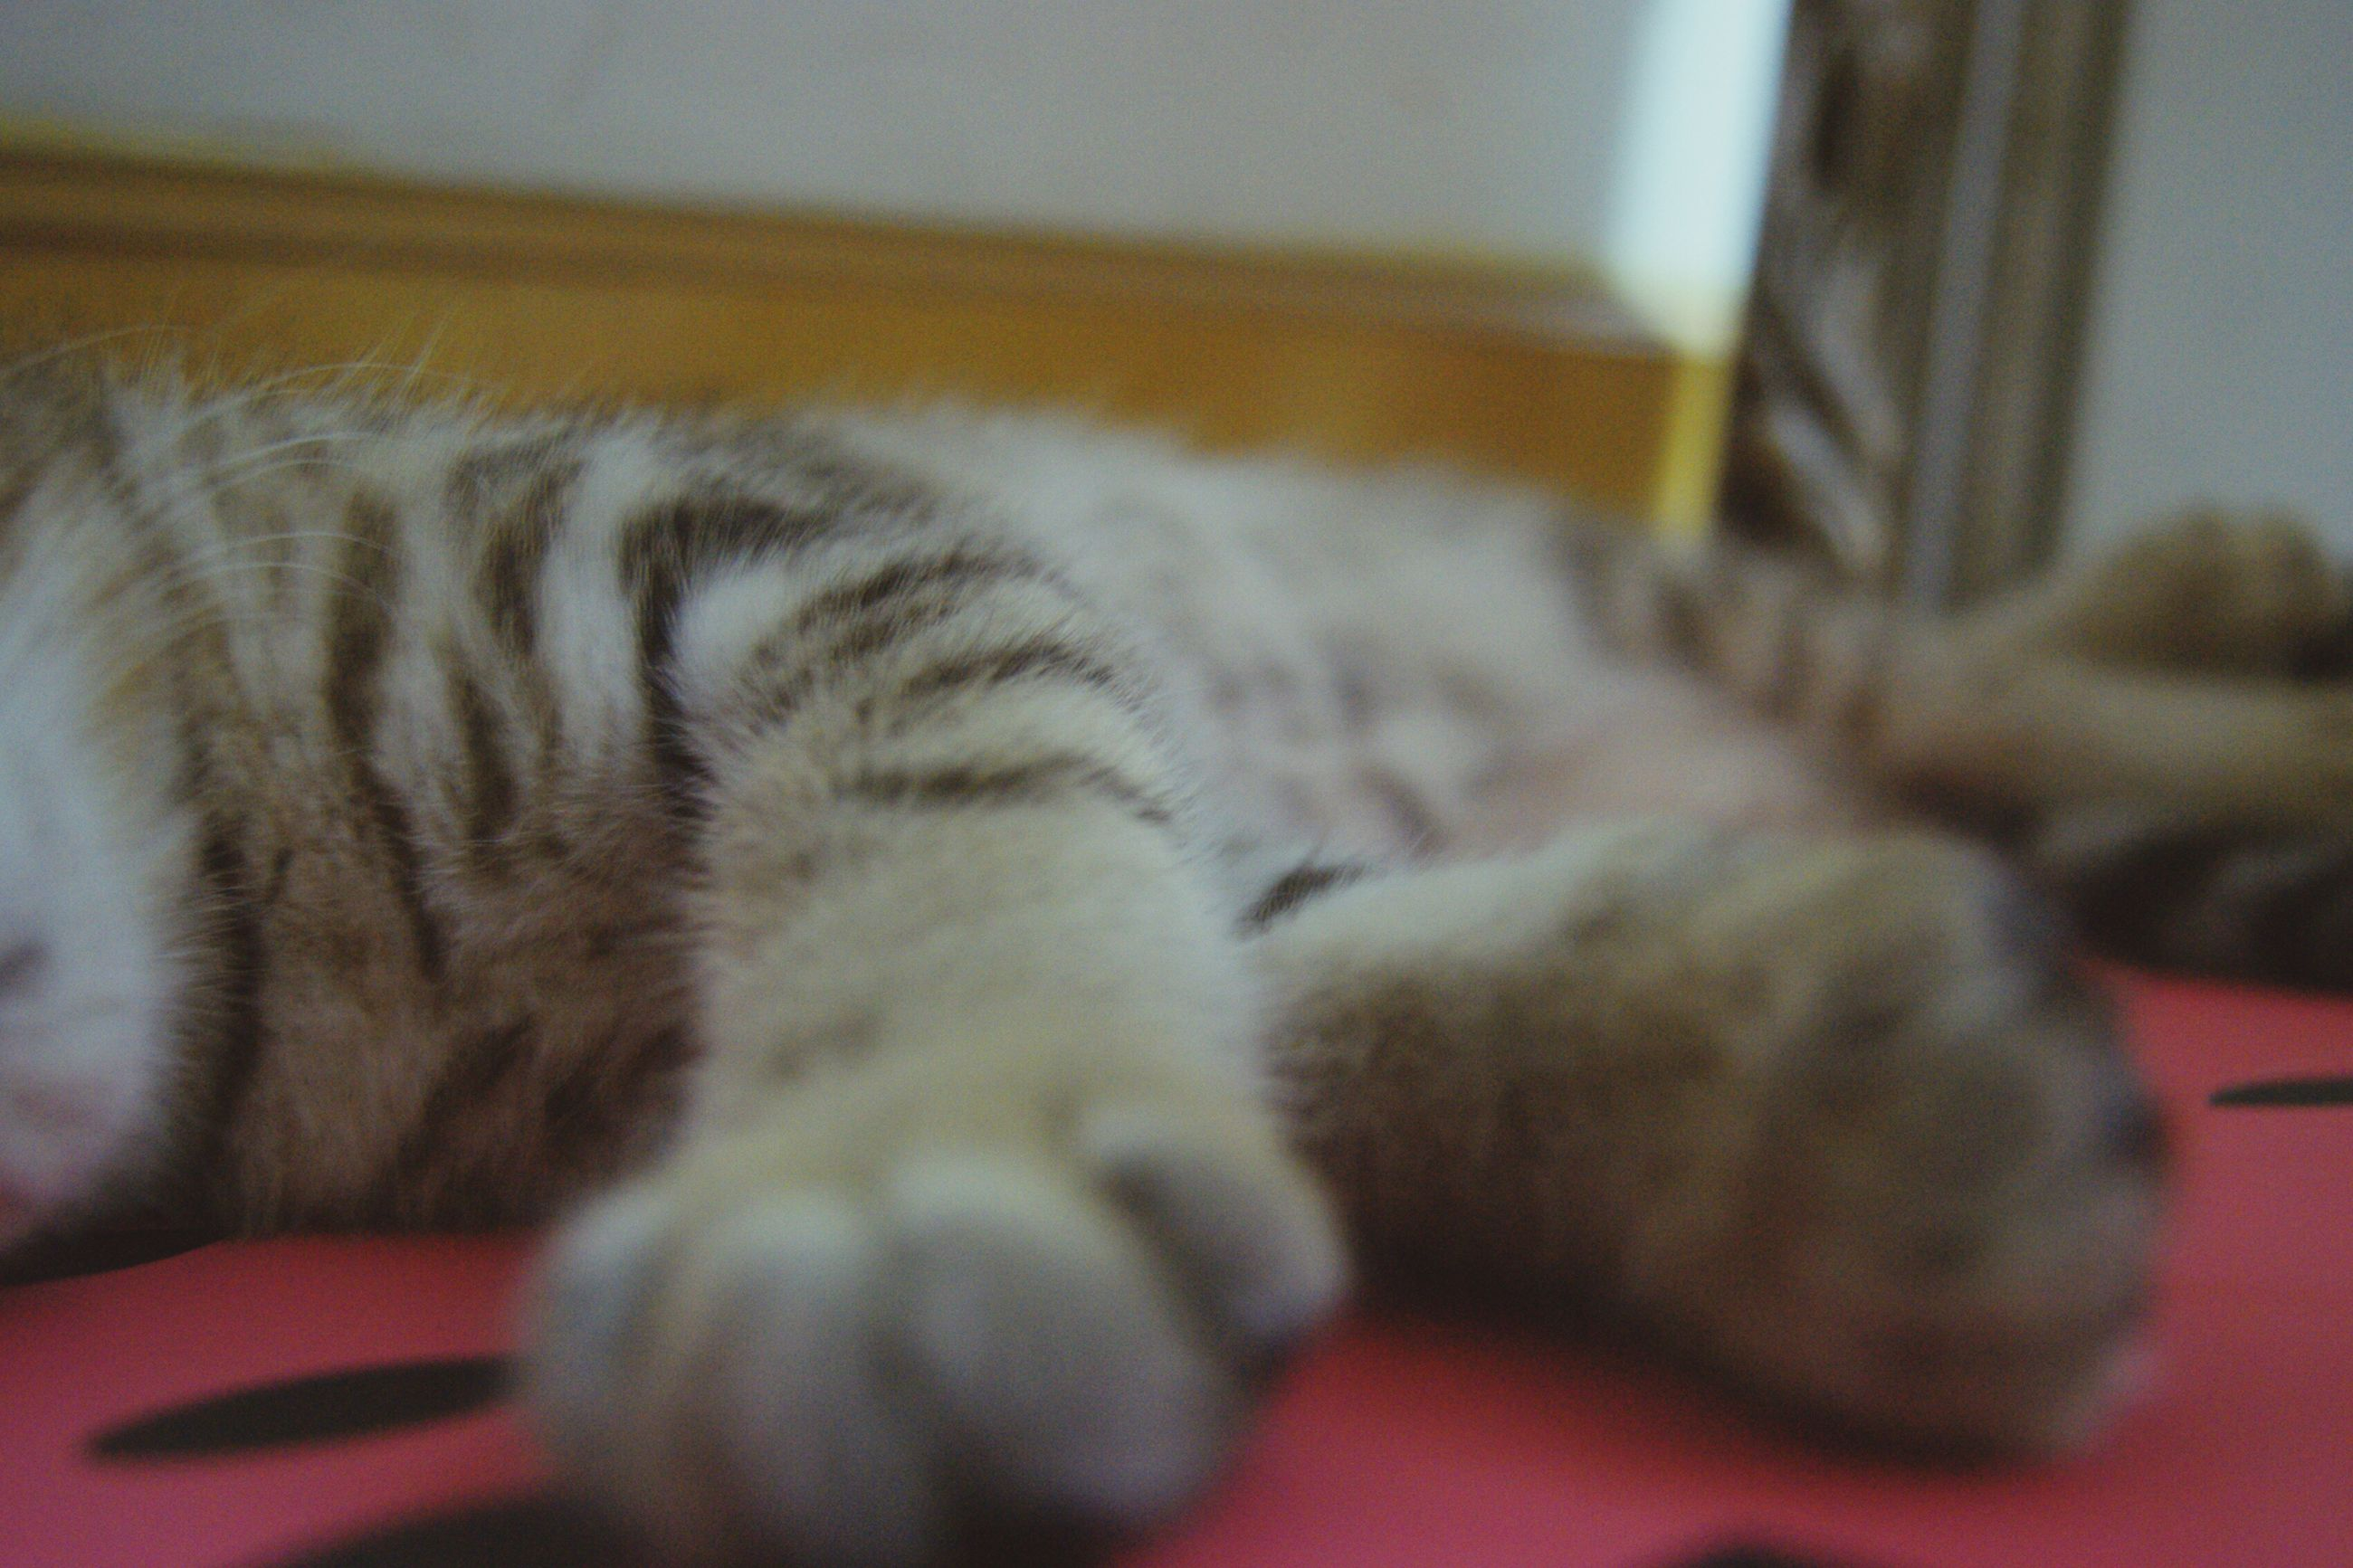 domestic cat, feline, sleeping, indoors, pets, relaxation, lying down, animal themes, one animal, paw, mammal, domestic animals, no people, close-up, day